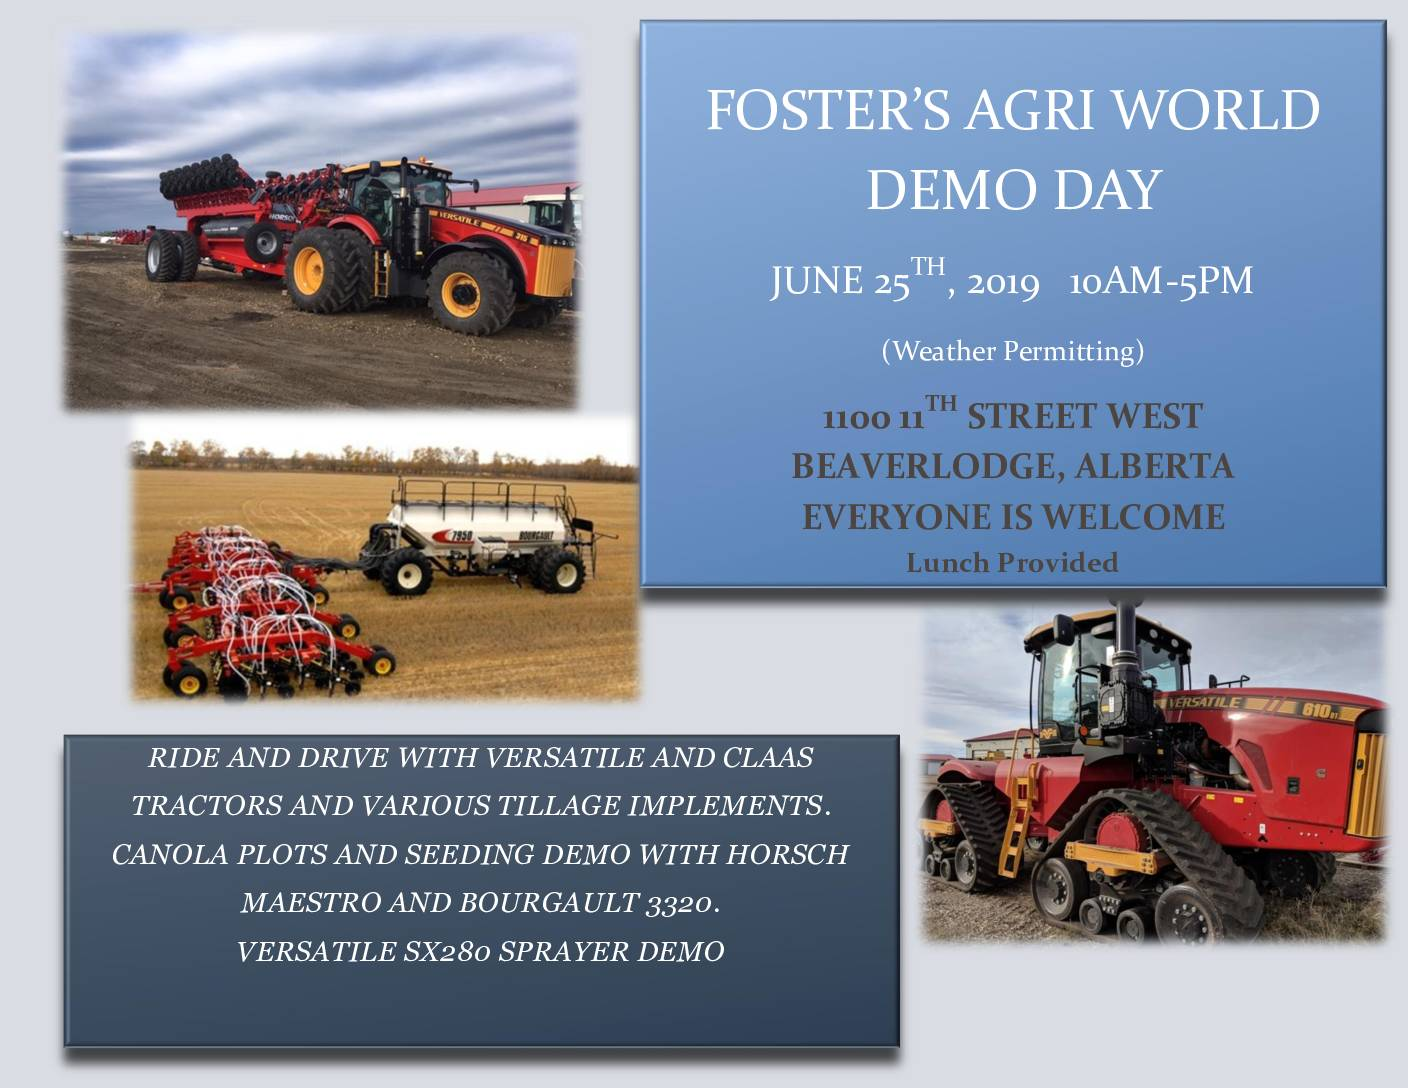 Foster's Agri World – Demo Day 2019